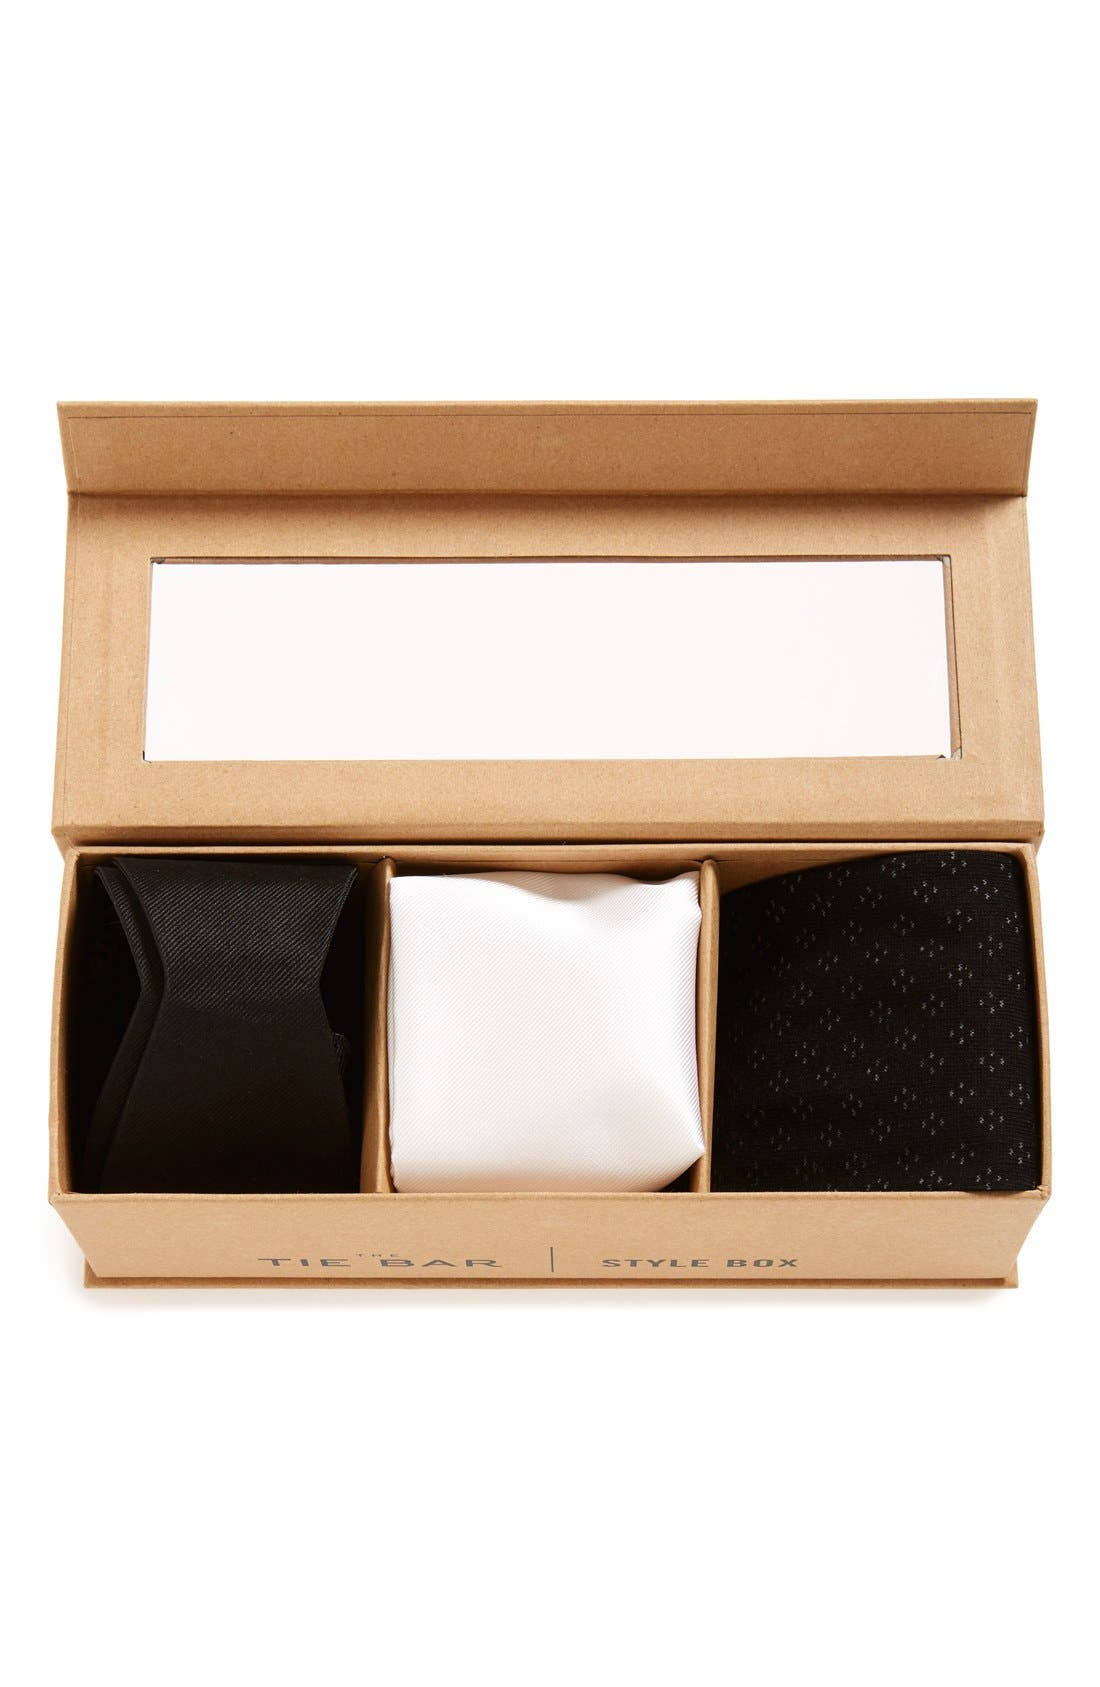 Small Style Box,                             Alternate thumbnail 3, color,                             Black Tie